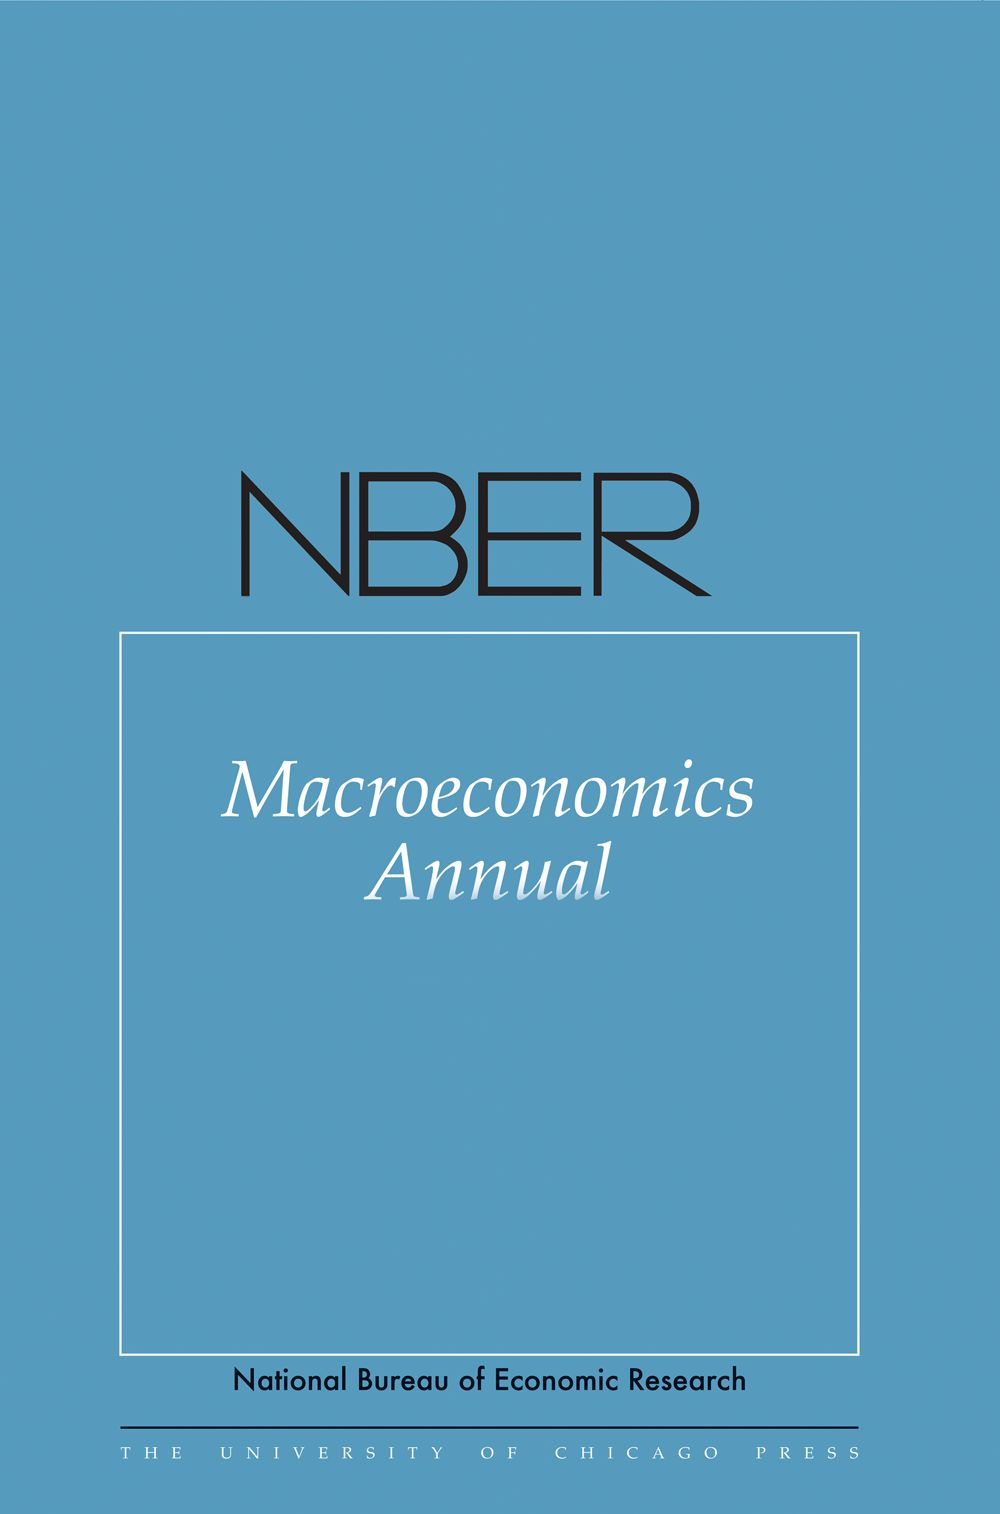 NBER Macroeconomics Annual 2015